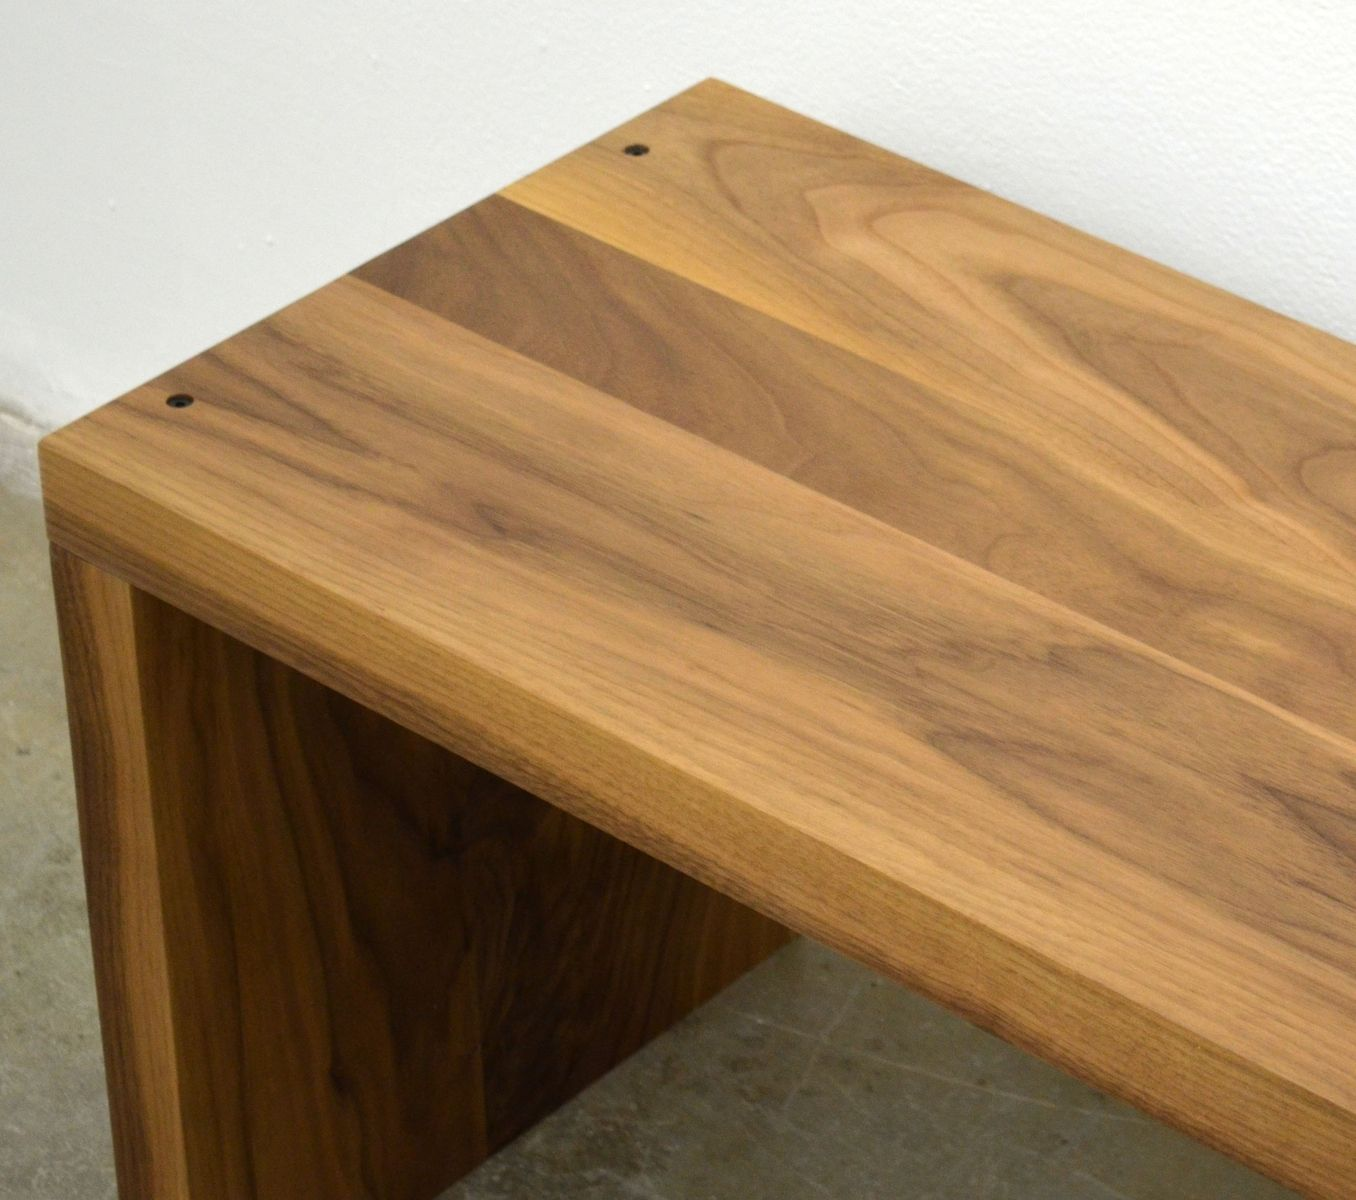 Modern log bench - Modern Solid Walnut Wood Bench By Matthew Mabee